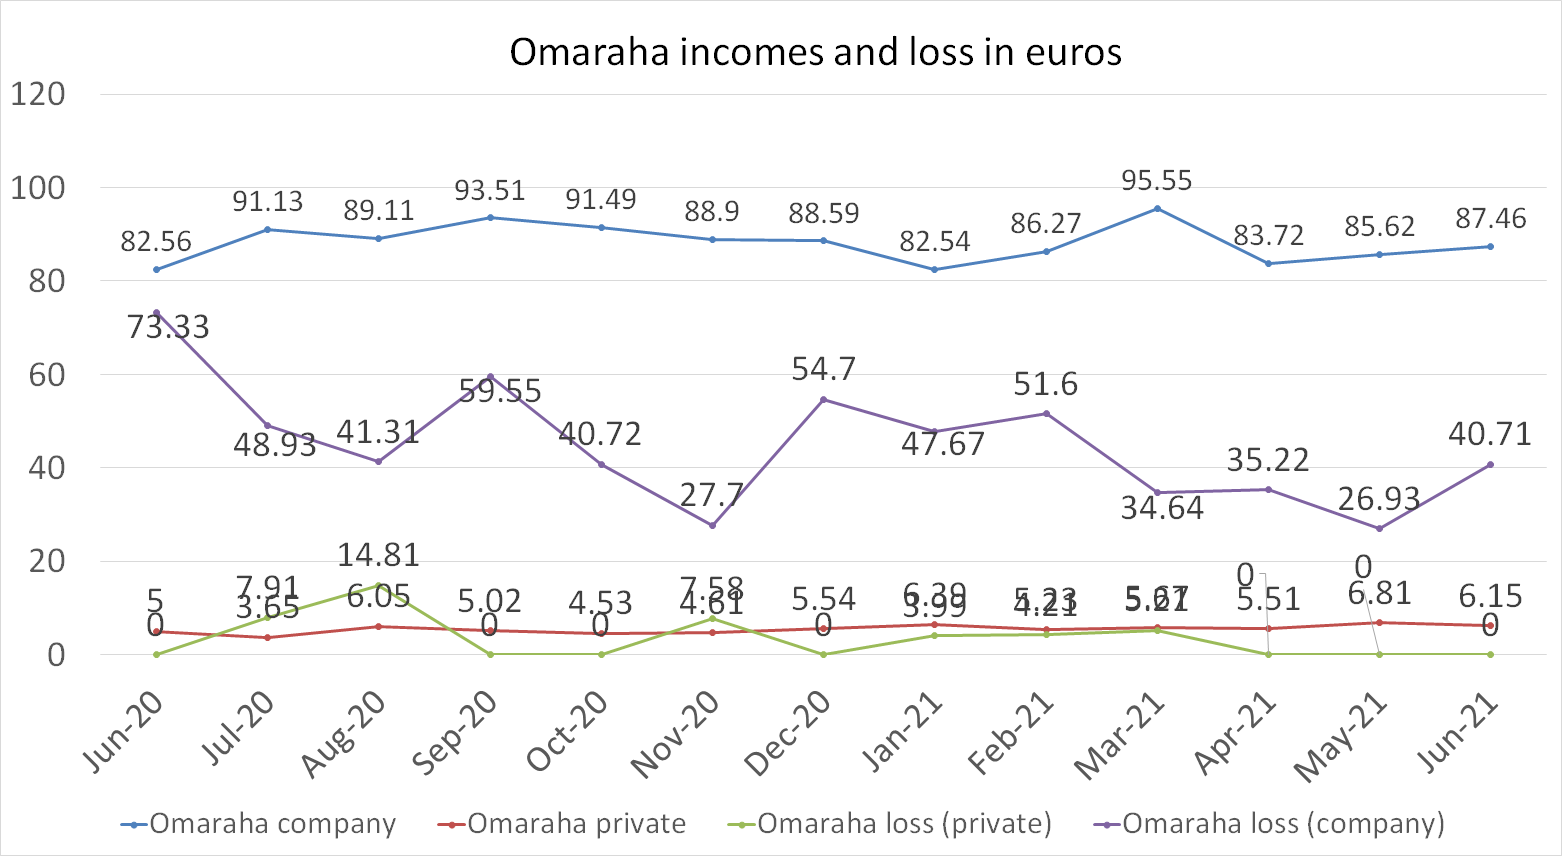 Omaraha incomes and loss in june 2021